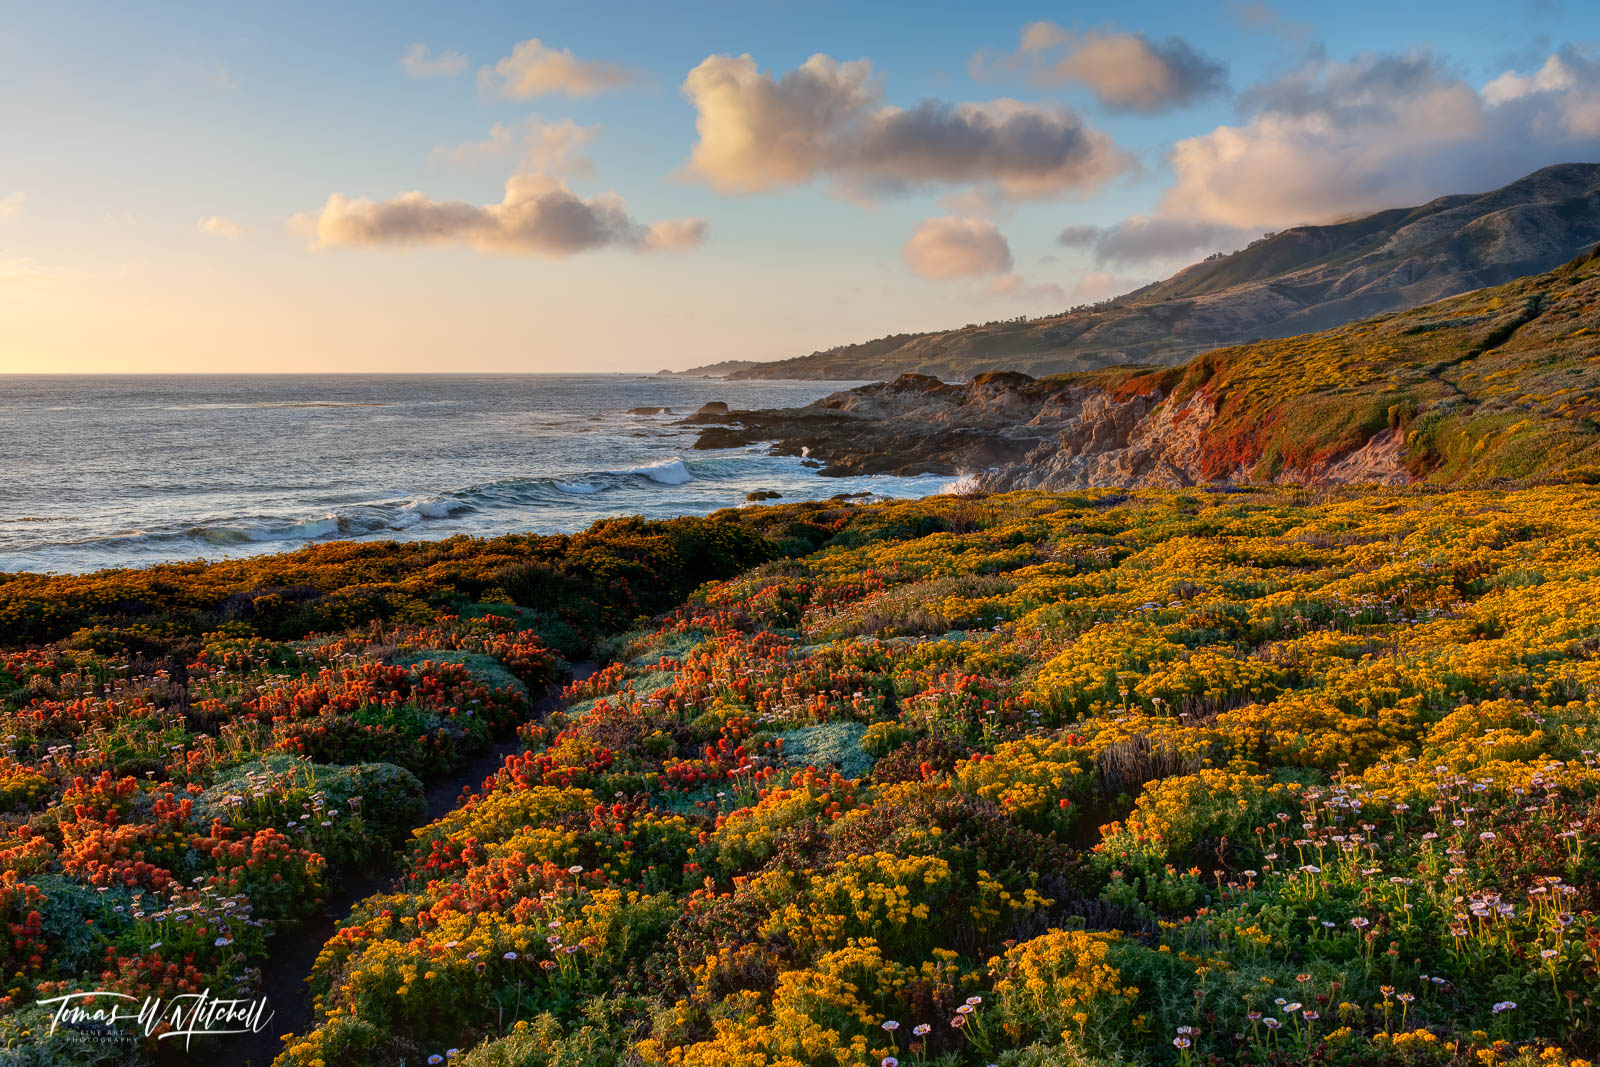 limited edition, fine art, prints, photograph, big sur, california, soberanes point, garrapata state park, waves, shoreline, wildflowers, clouds, mountains, ocean, photo